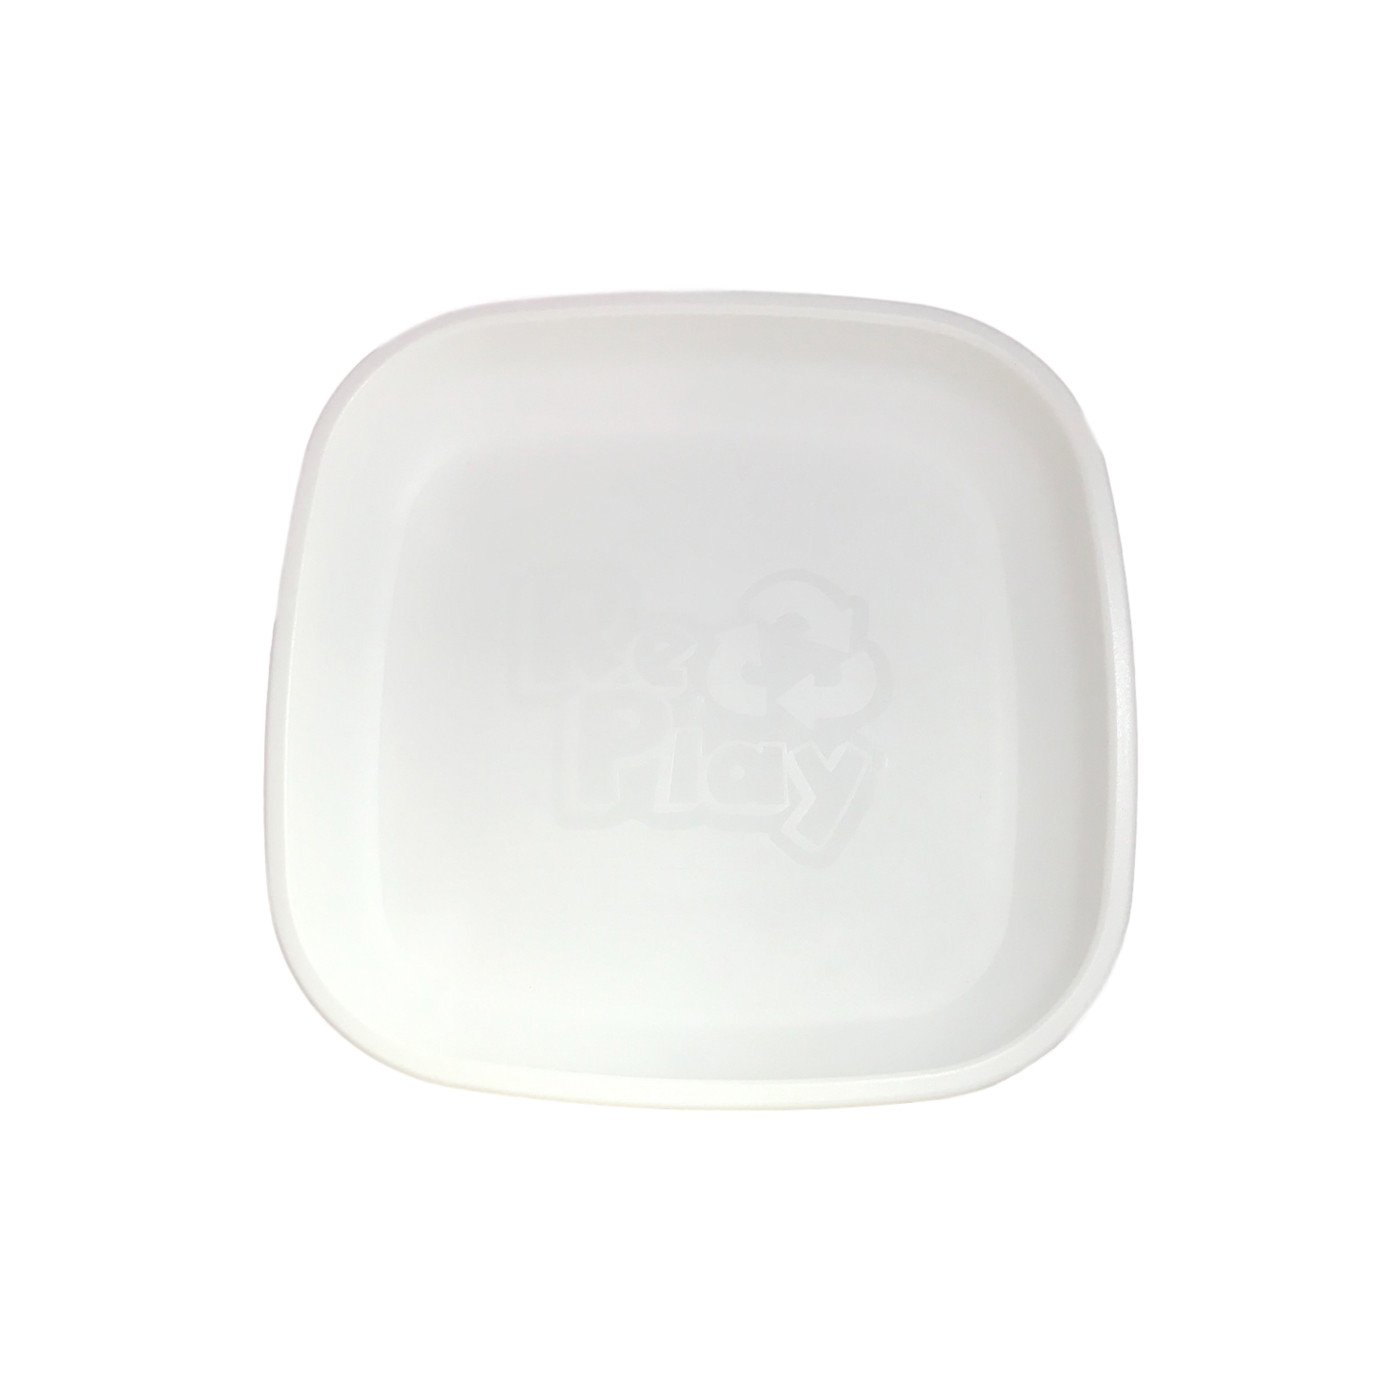 Replay Plate Replay Dinnerware White at Little Earth Nest Eco Shop